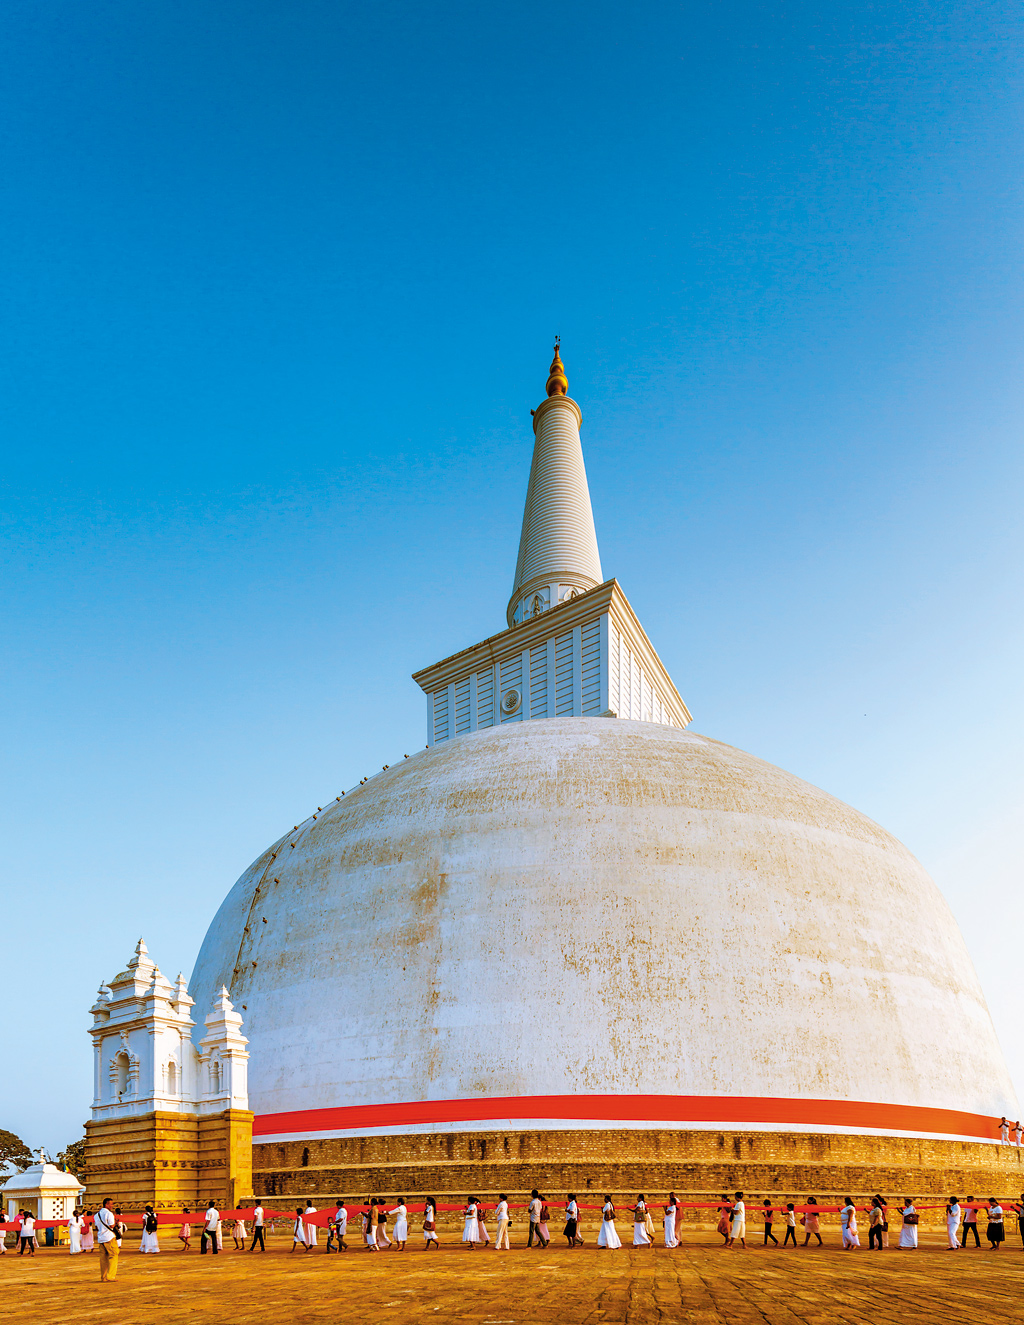 The Ruwanwelisaya Stupa in Anuradhapura, Sri Lanka. The largest stupa in Sri LankaÓ³ first capital (4th to 11th century CE) is draped in 1,100 feet of saffron cloth 3-4 times a day. BuddhaÓ³ relics are believed to be inside the stupa.